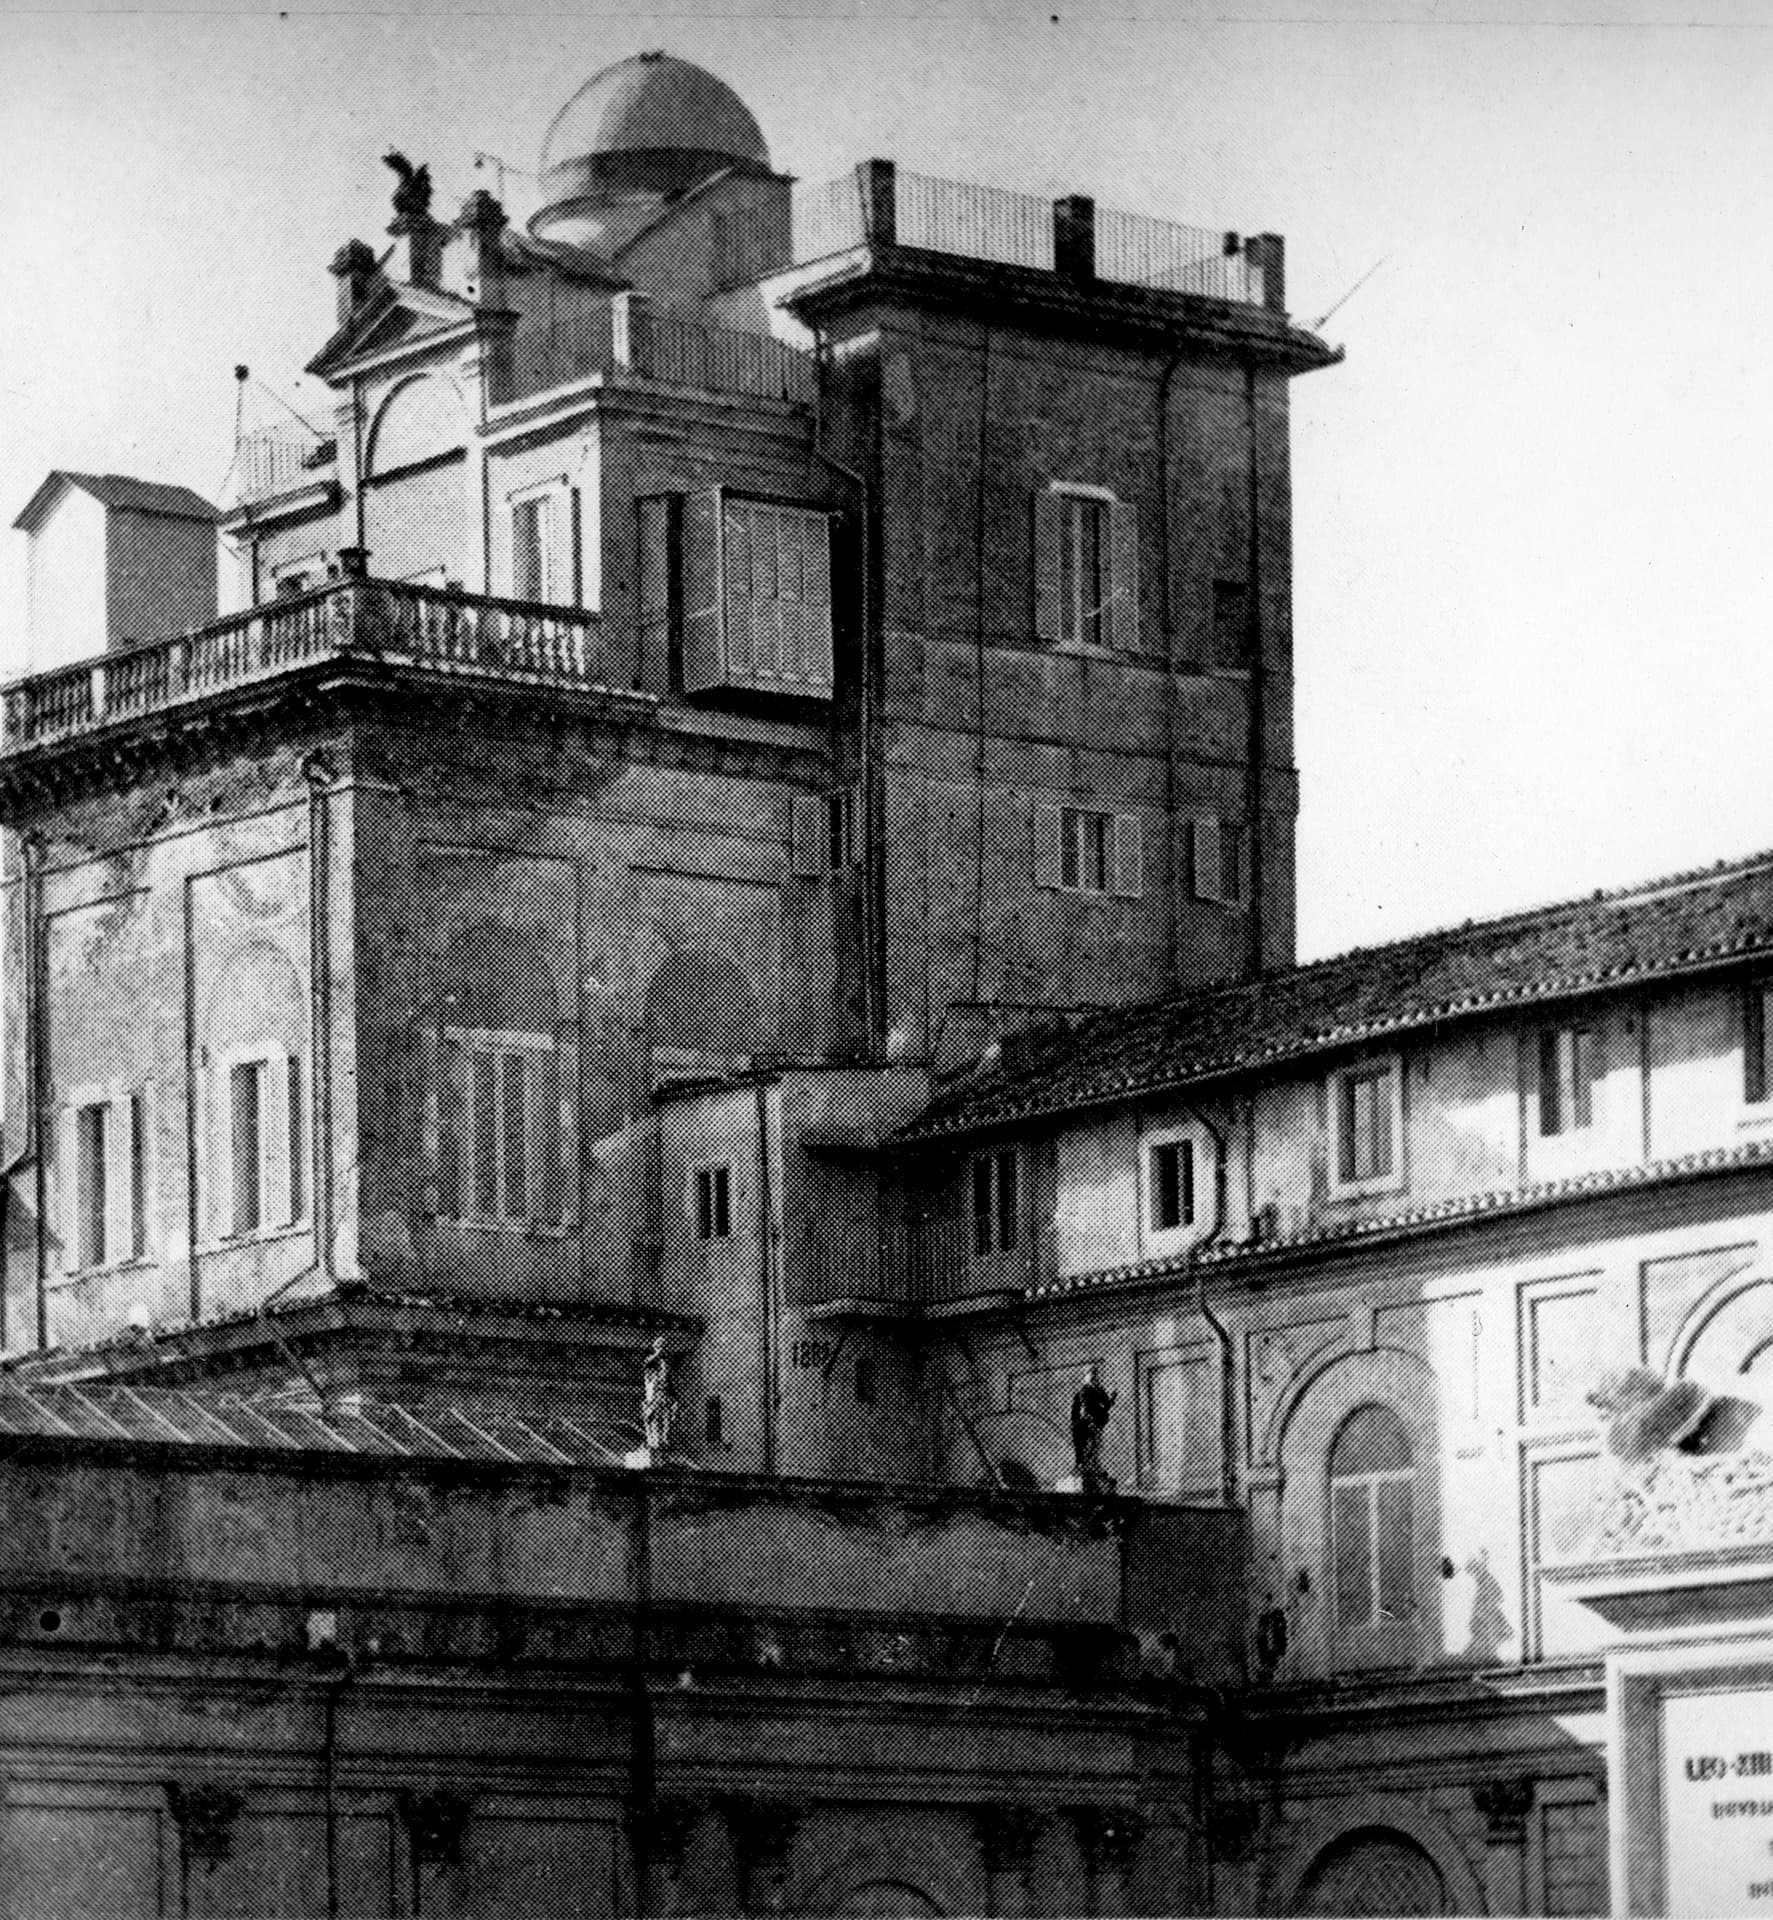 The Specula Vaticana in the Tower of the Winds within the Vatican